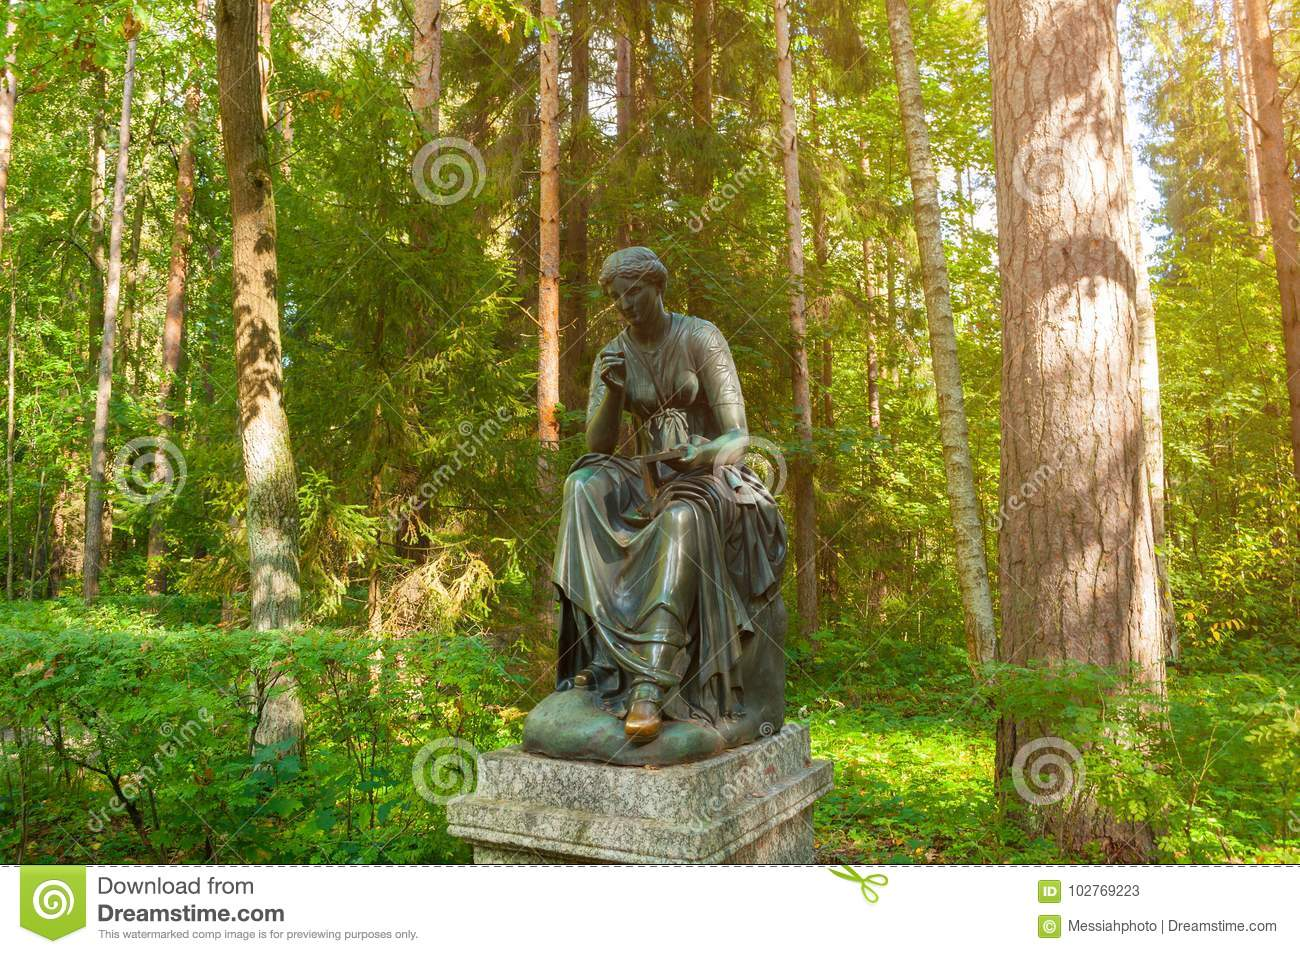 Bronze sculpture of Calliope - the muse of epic poetry and knowledge. Old Silvia park in Pavlovsk, St Petersburg, Russia